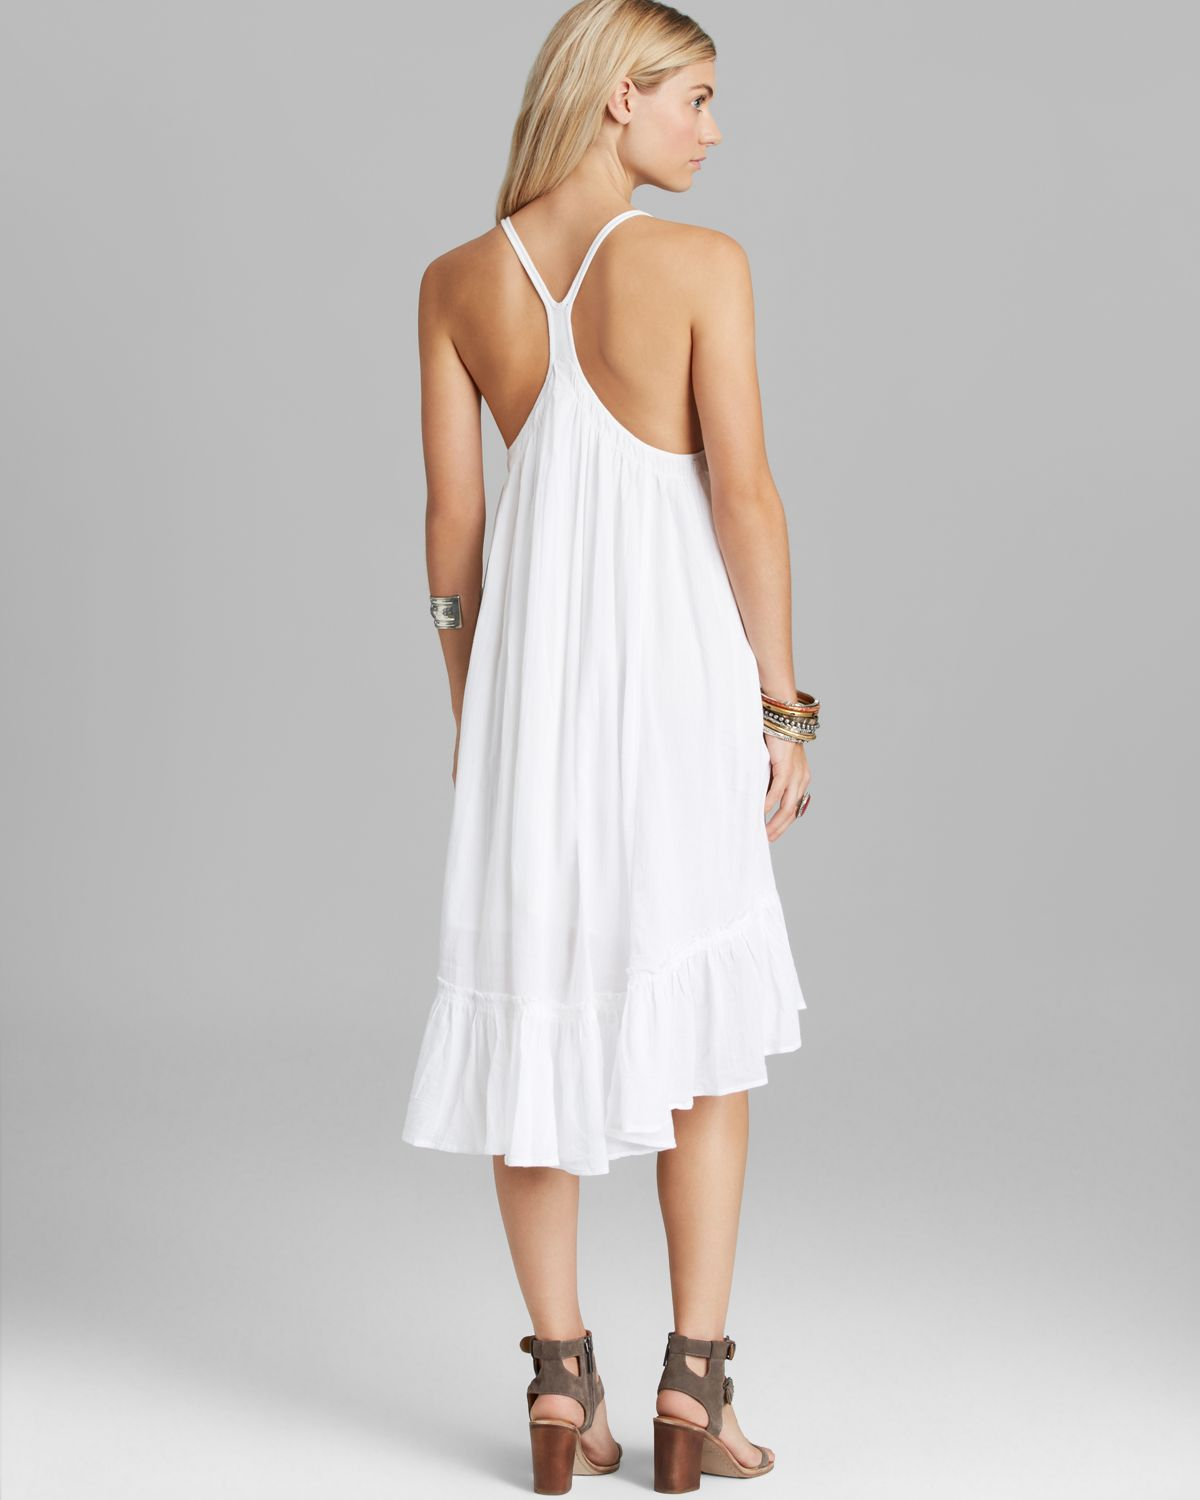 Free people Dress - Solid Gauze in White  Lyst